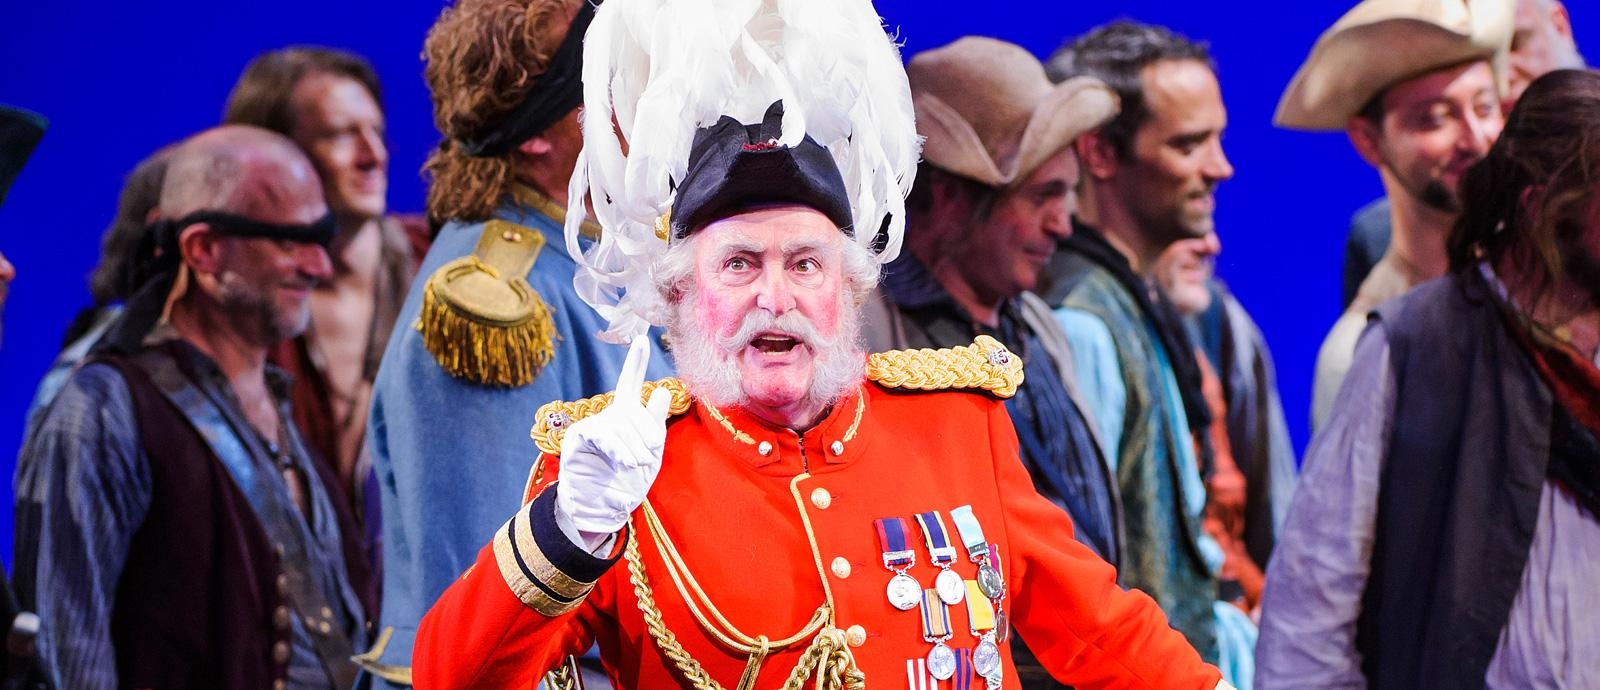 ENO's The Pirates of Penzance - Andrew Shore as The Major General. Photo by Tristram Kenton